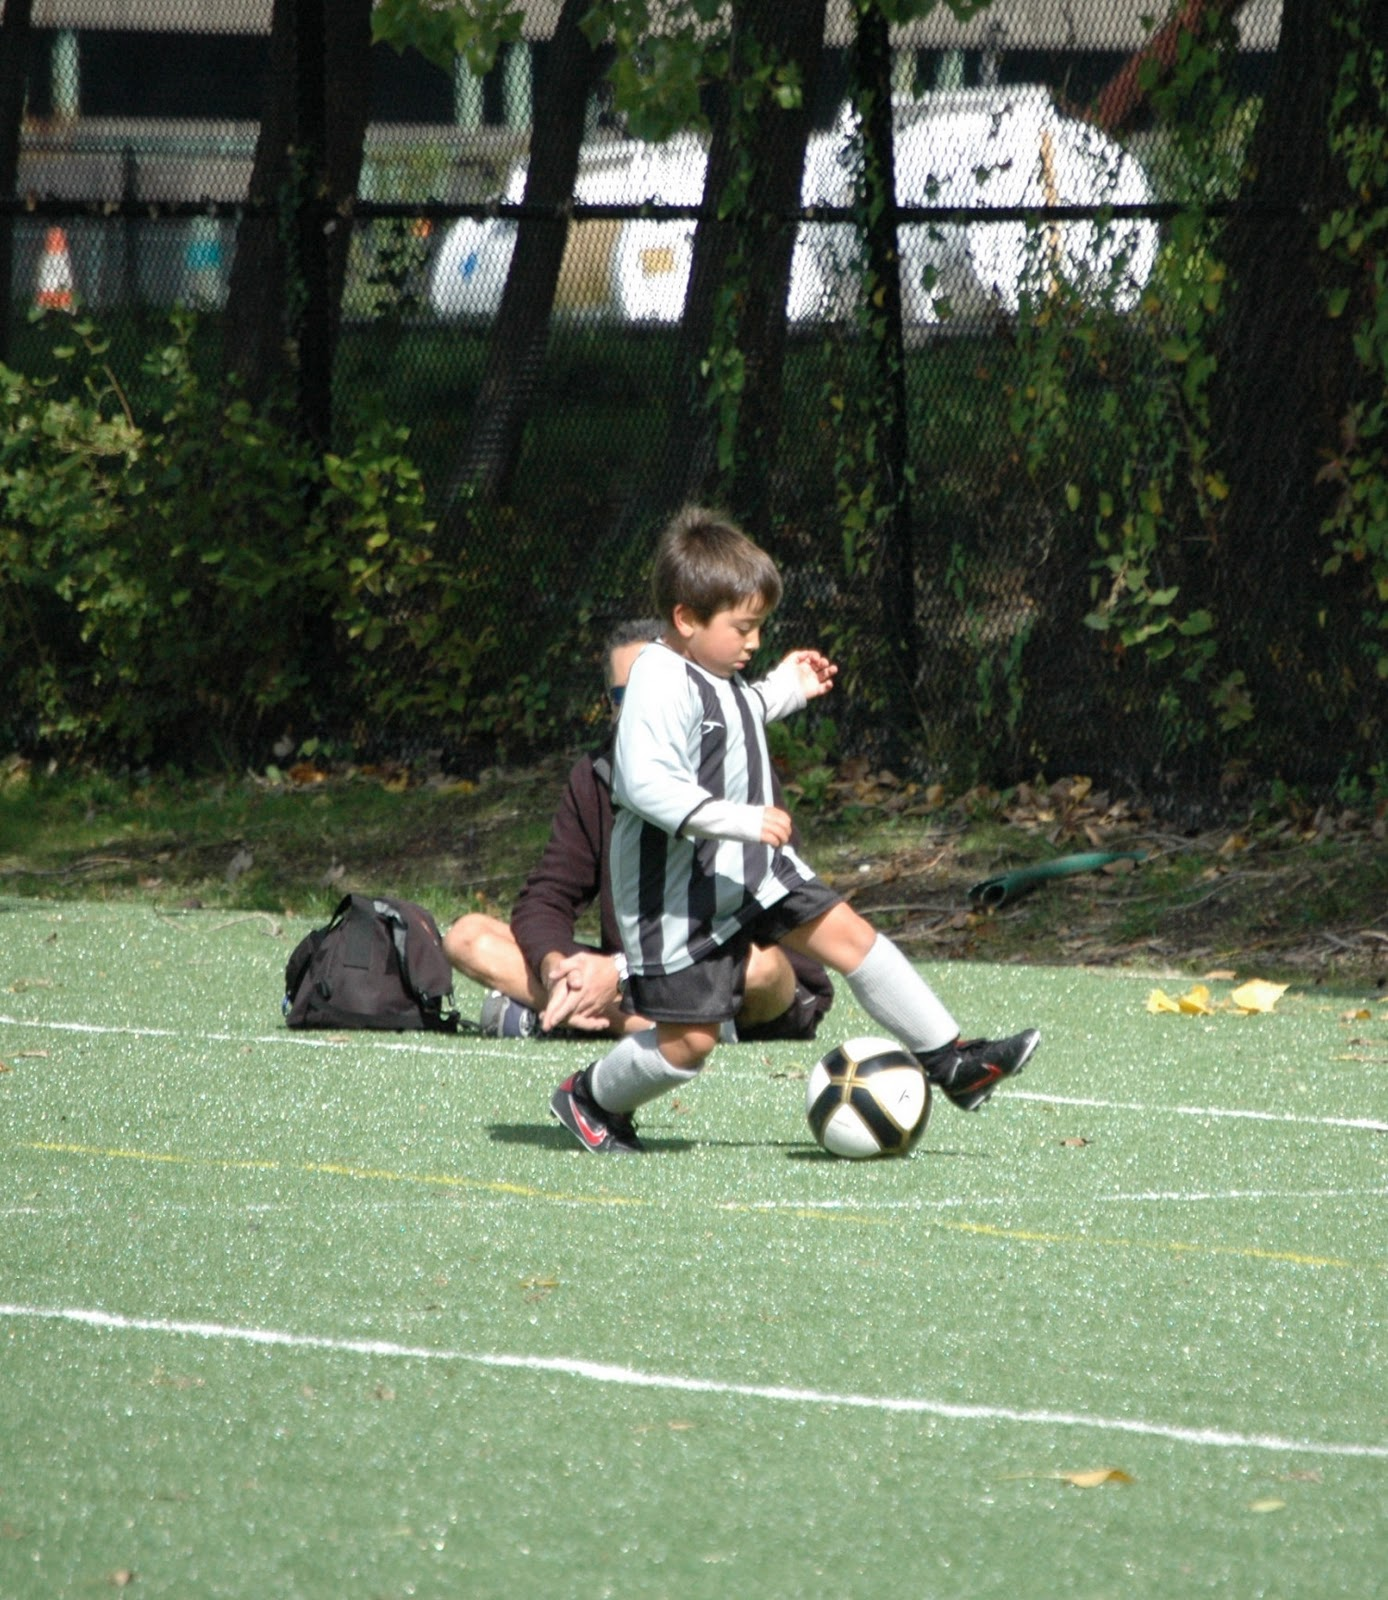 Recaps of the previous Roosevelt Island Youth Program Soccer League games ...